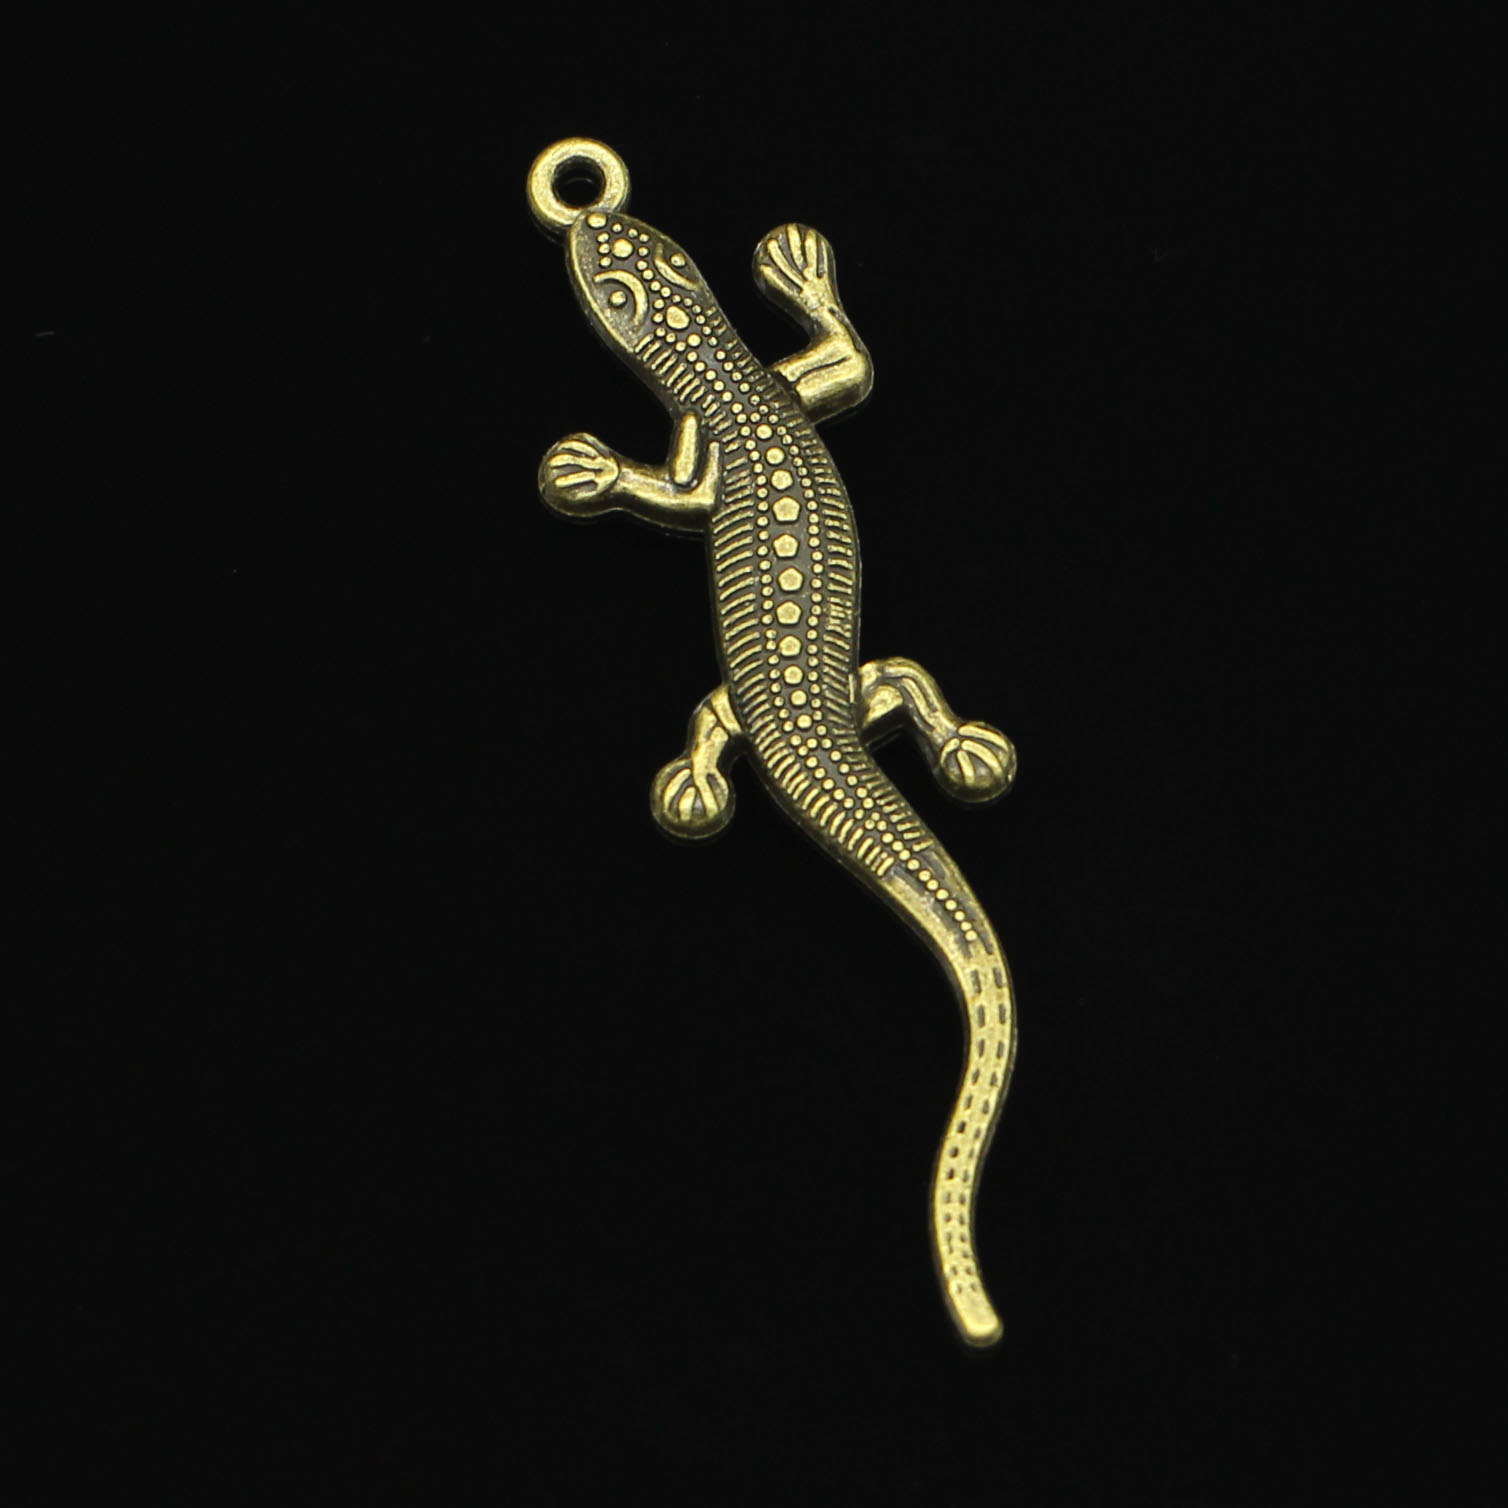 3 Large Lizard Pendants Antiqued Silver Bronze Gold Reptile Findings Assorted